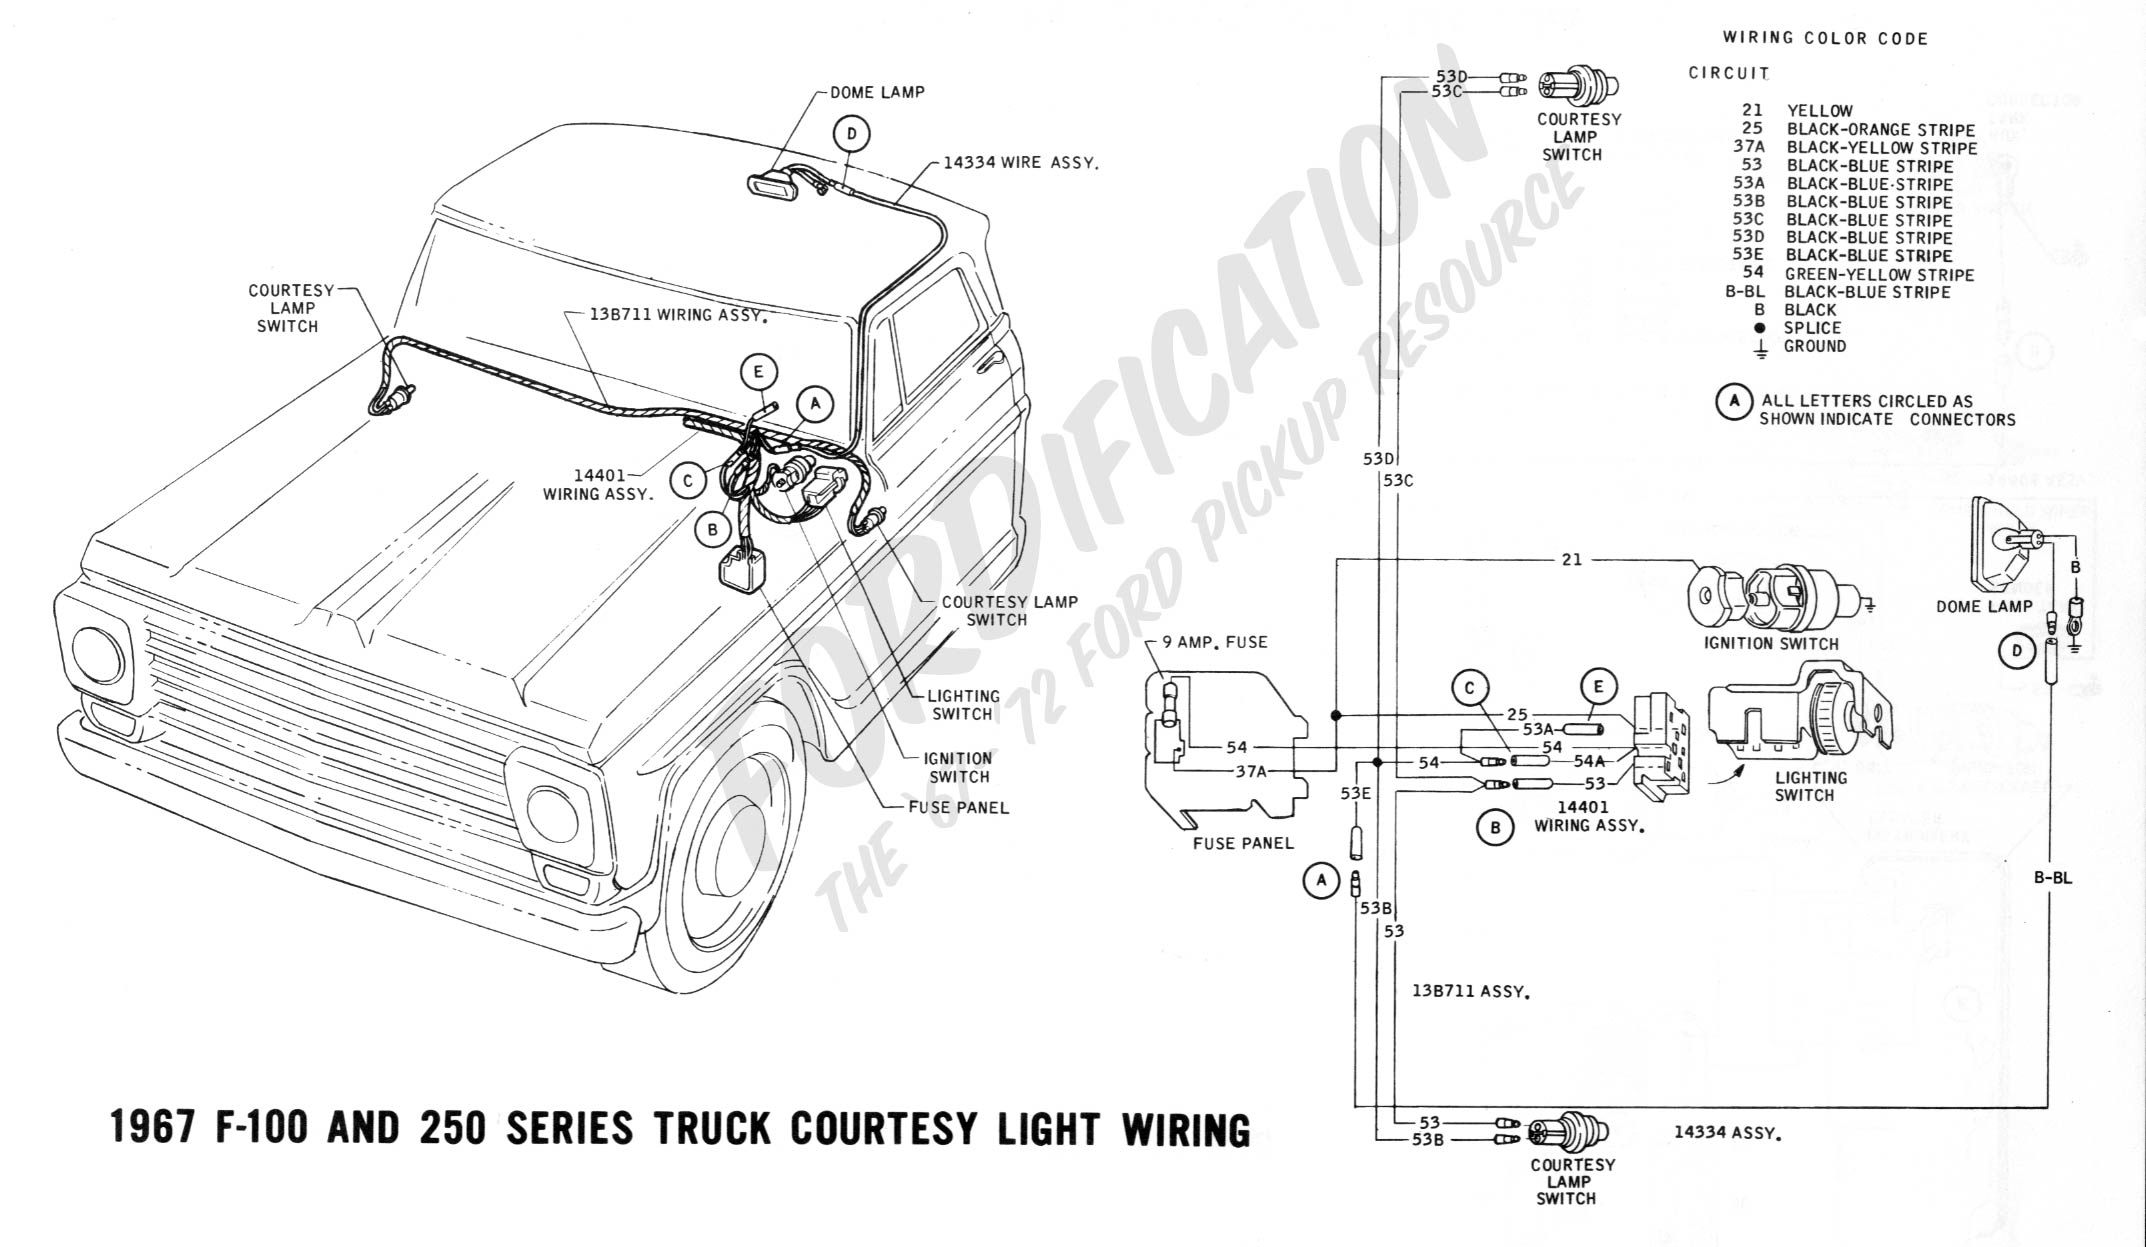 wiring 1967courtesylight wiring in ignition switch in 1966 f100 ford truck enthusiasts forums 1966 ford truck wiring diagram at crackthecode.co